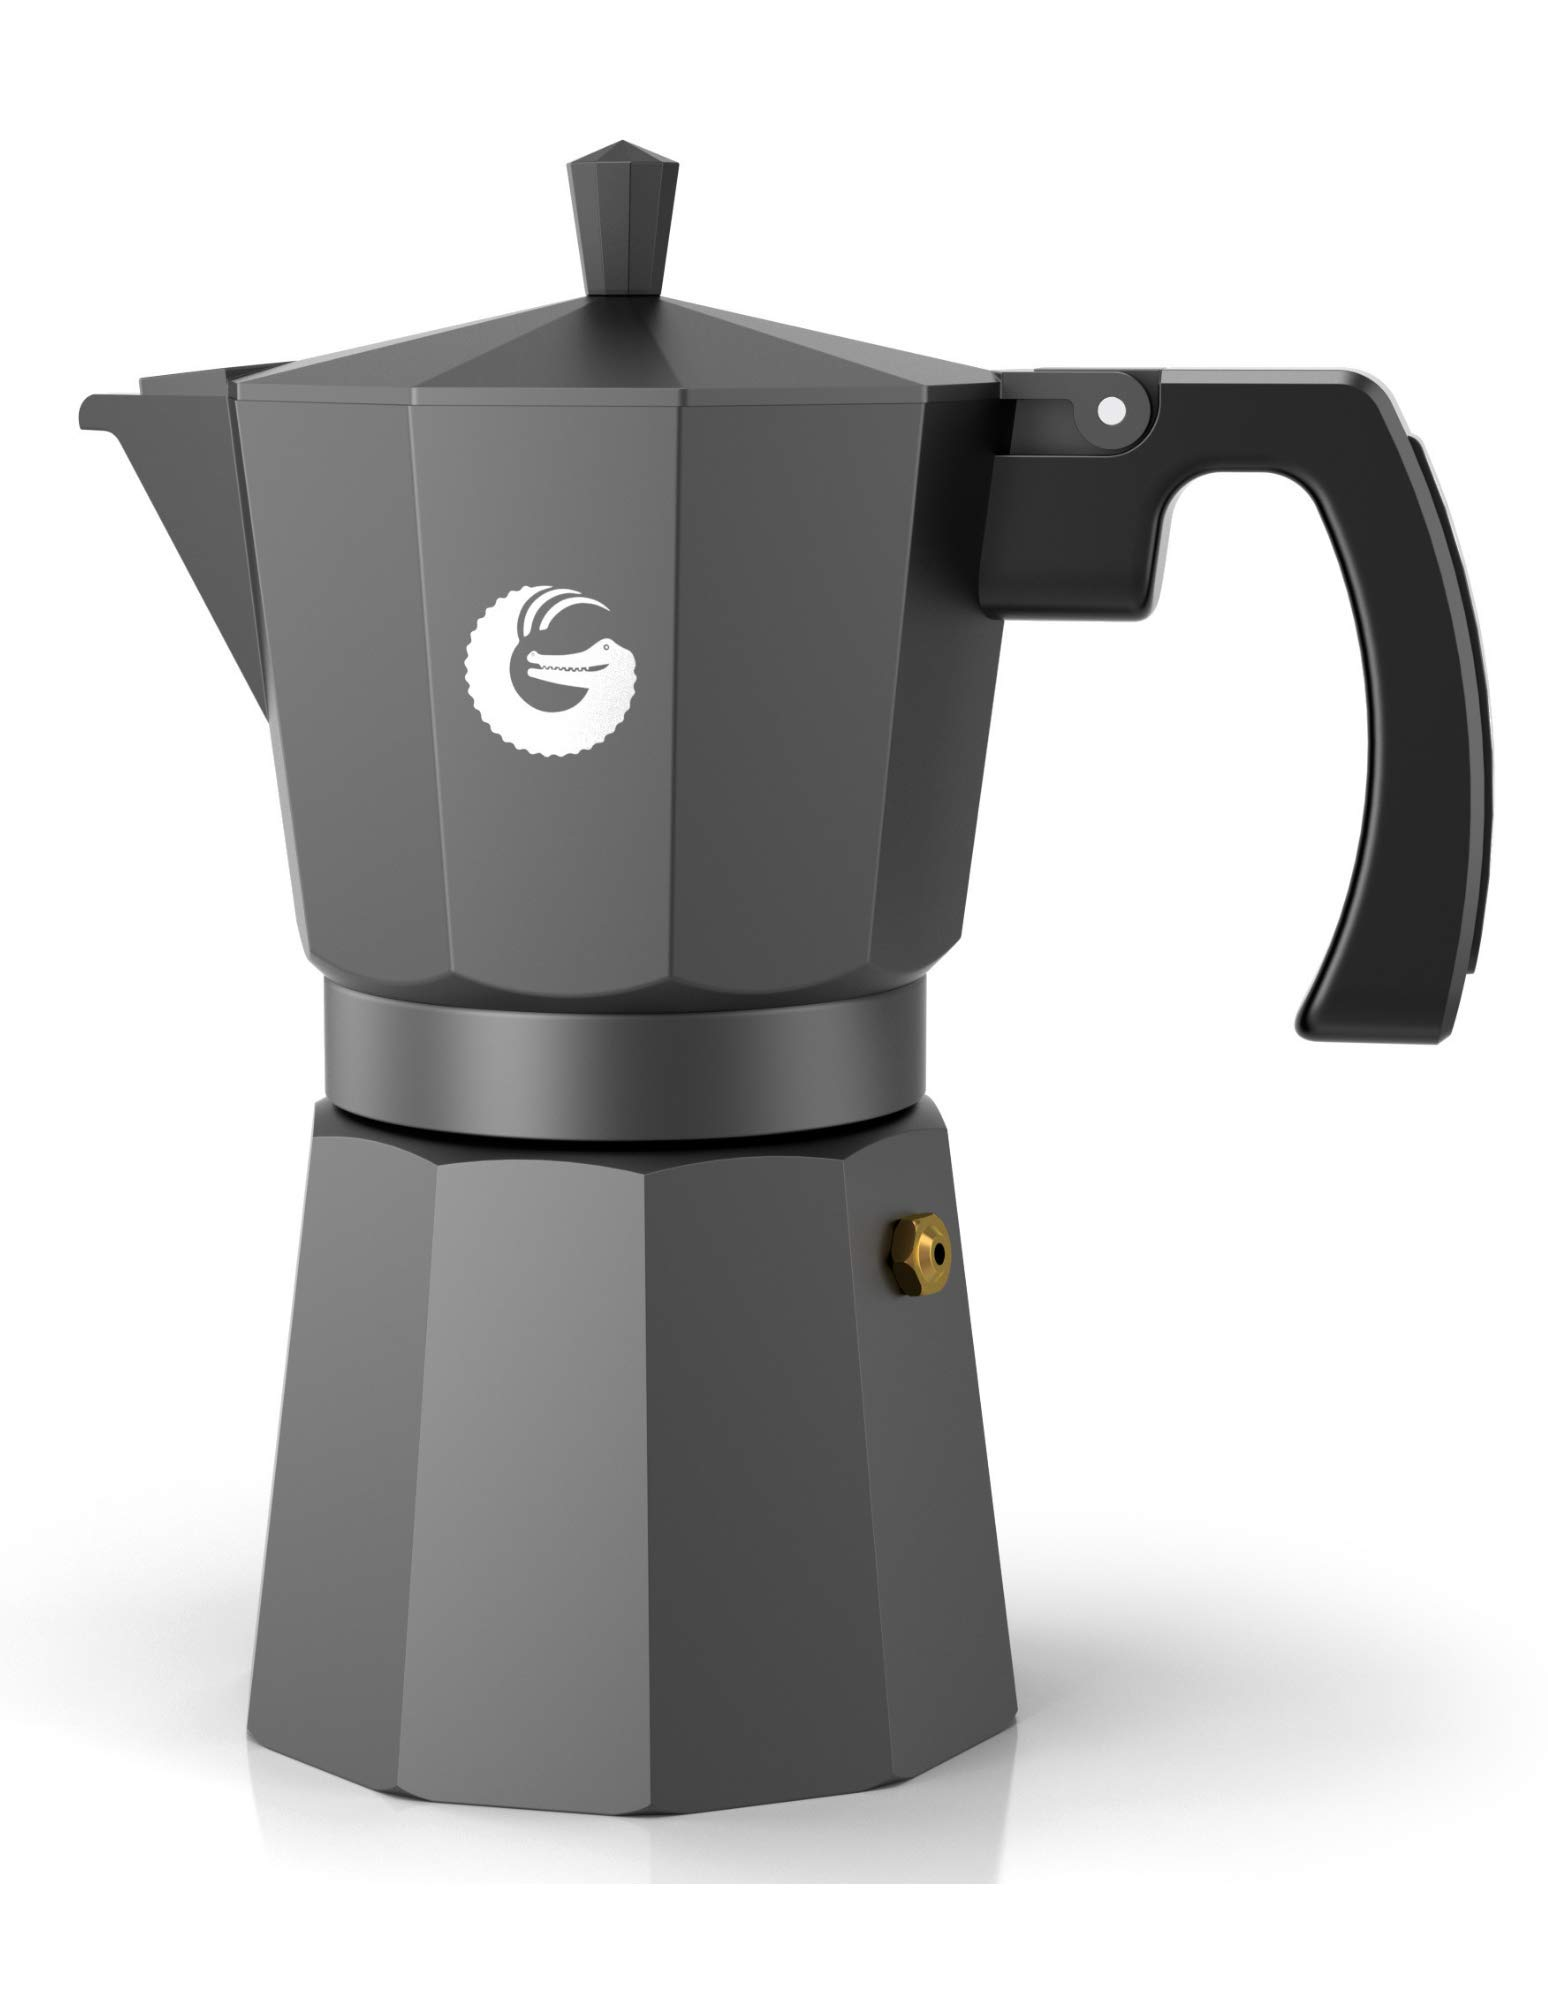 Coffee Gator Espresso Moka Pot - Stovetop Brewer Plus 2 Thermal Cups - 12 Ounce by Coffee Gator (Image #3)